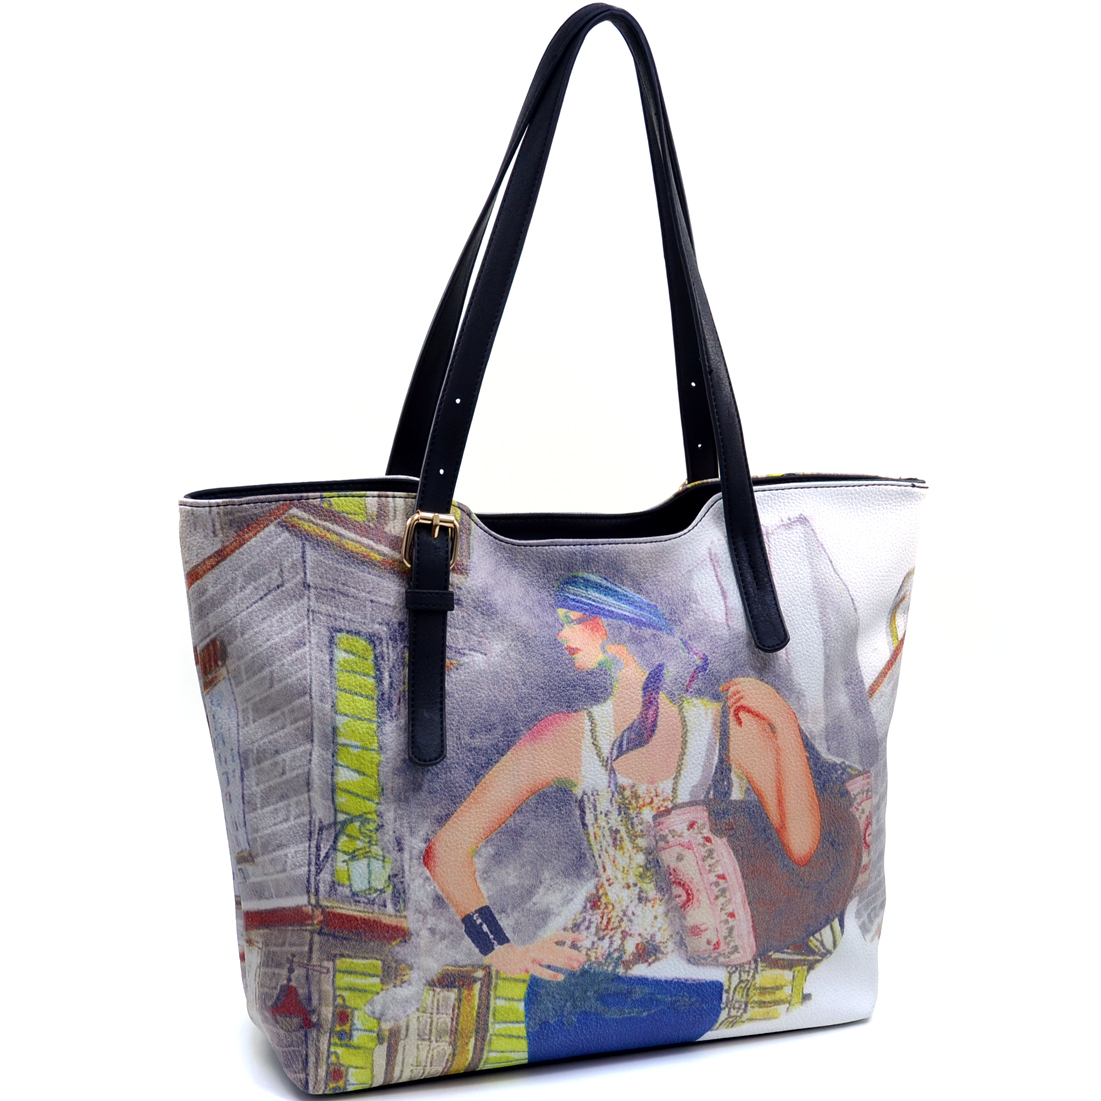 Fashion Tote Bag with Vintage Lady Print